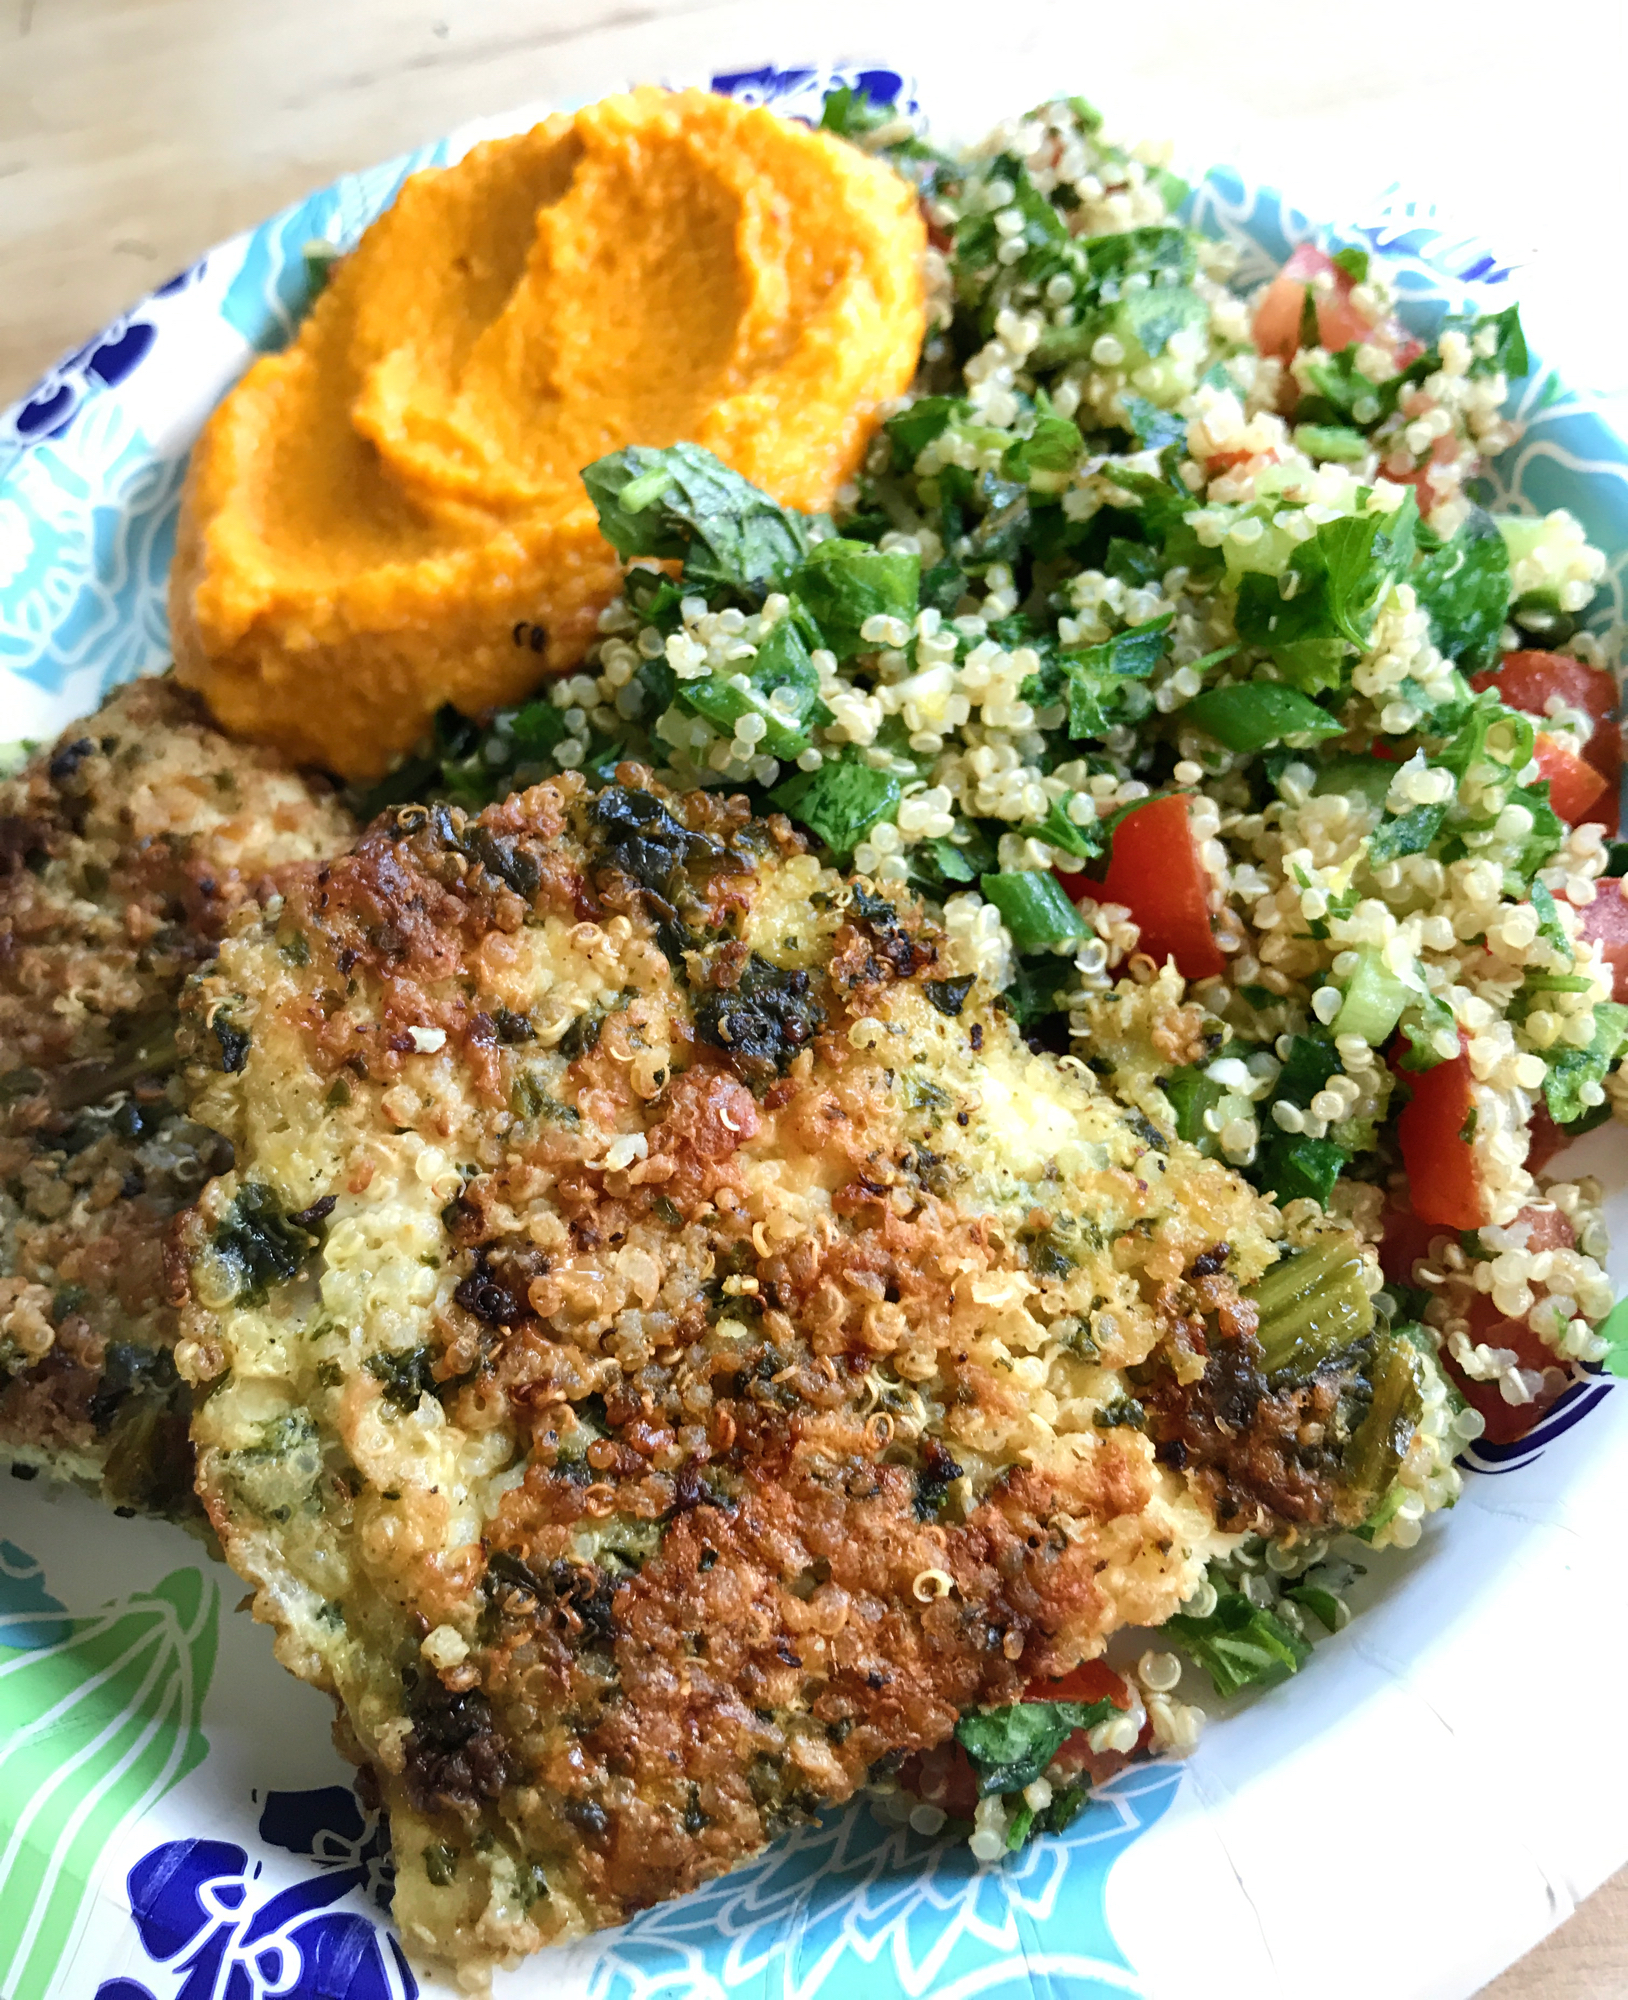 Quinoa Crusted Chicken, GF Tabouli and Carrot Hummus